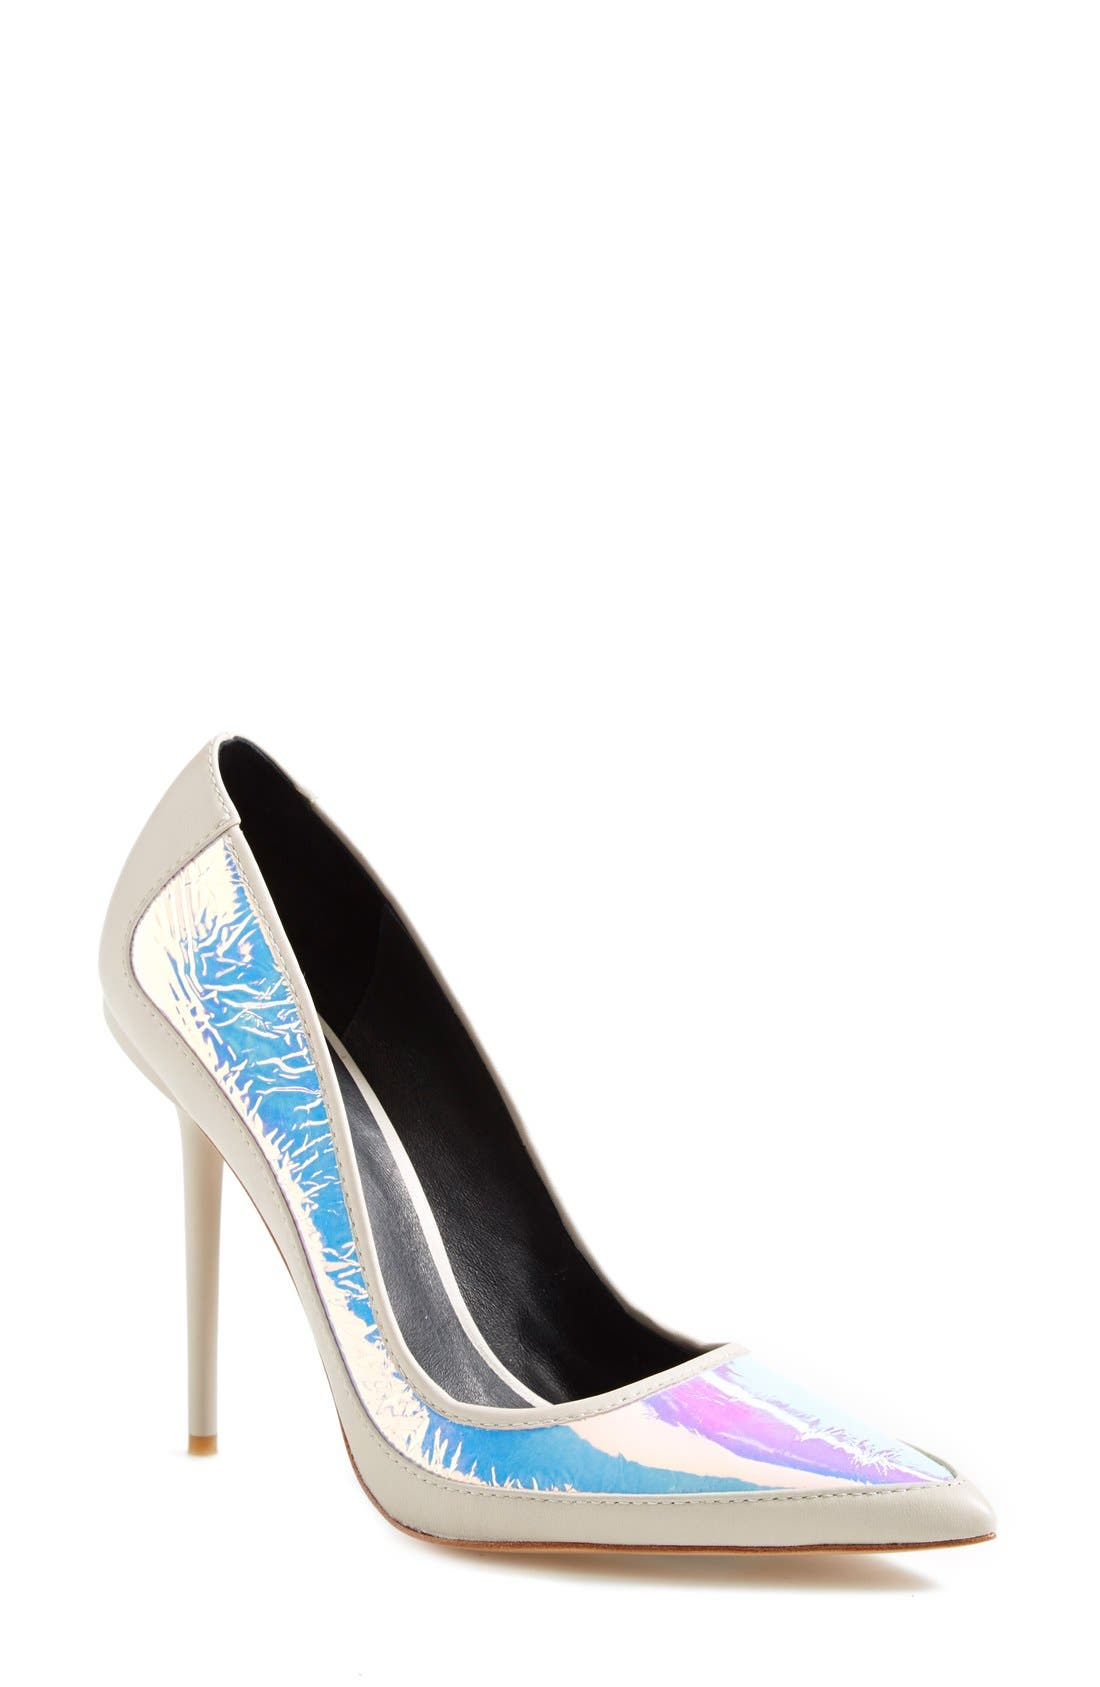 Alternate Image 1 Selected - L.A.M.B. 'Bethel' Pointy Toe Pump (Women)